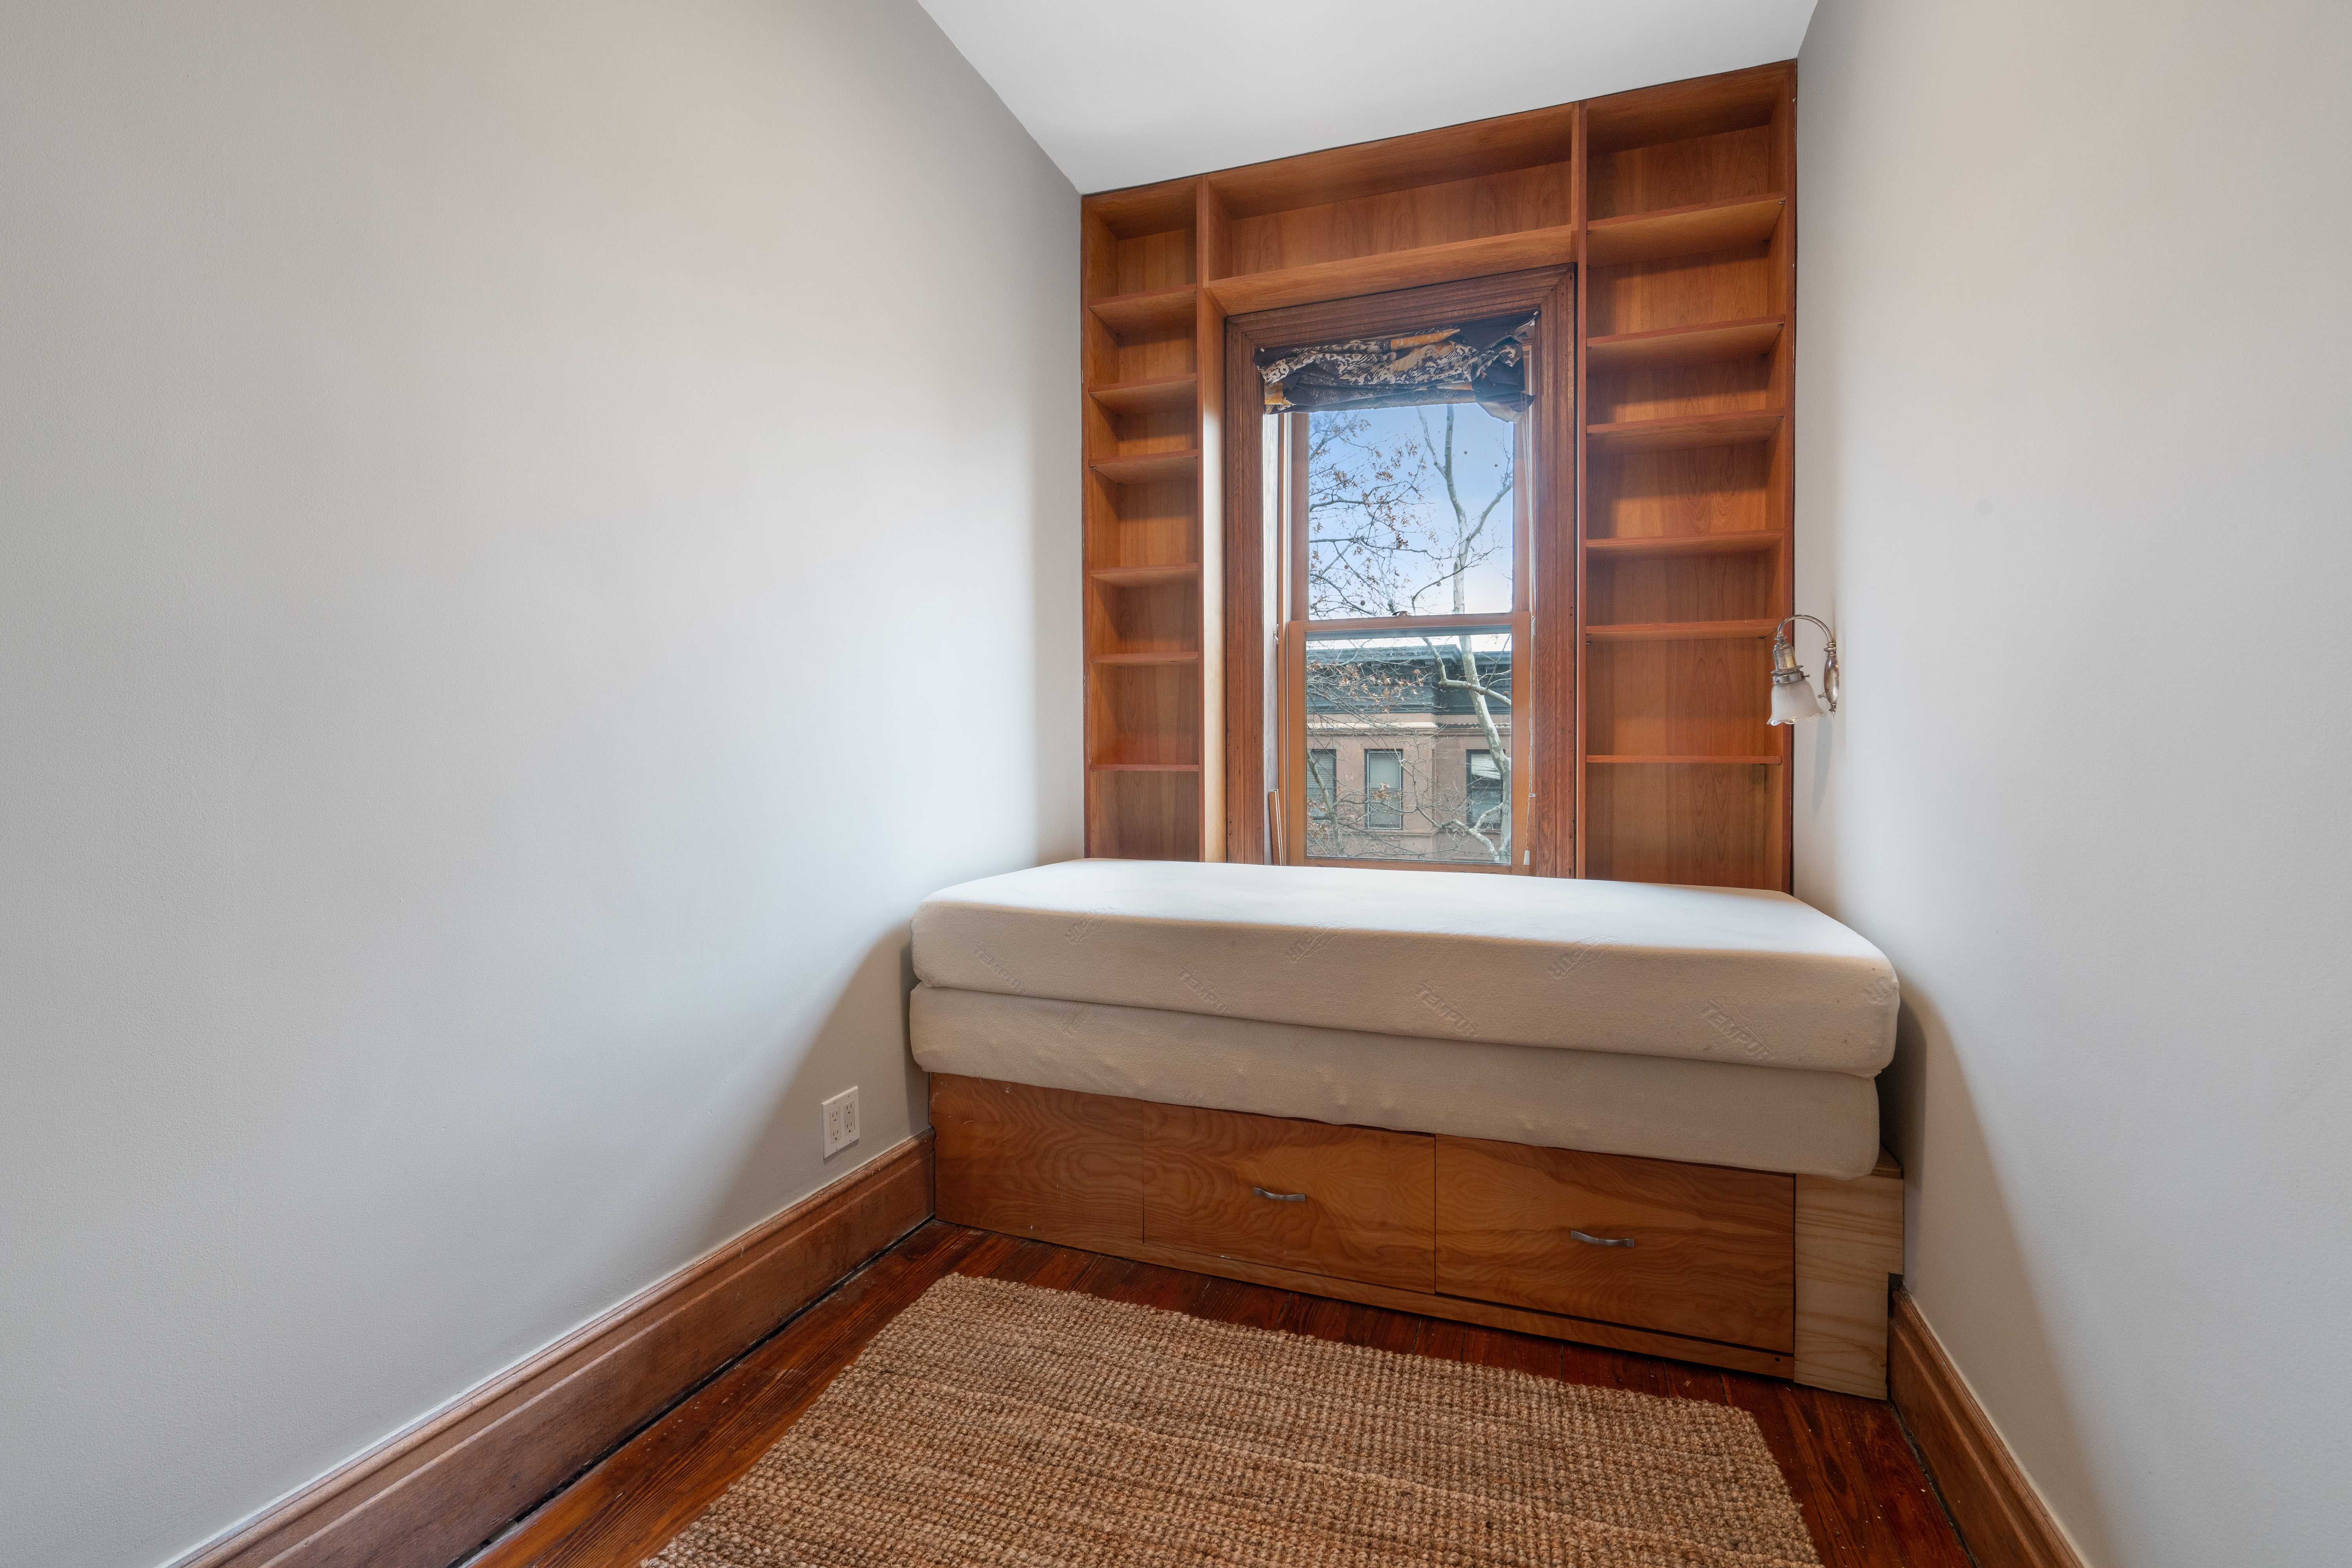 594 2nd St Photo 11 - BROWNSTONER-LISTING-47512a55ccfbbeb19b0a8fb315f62163